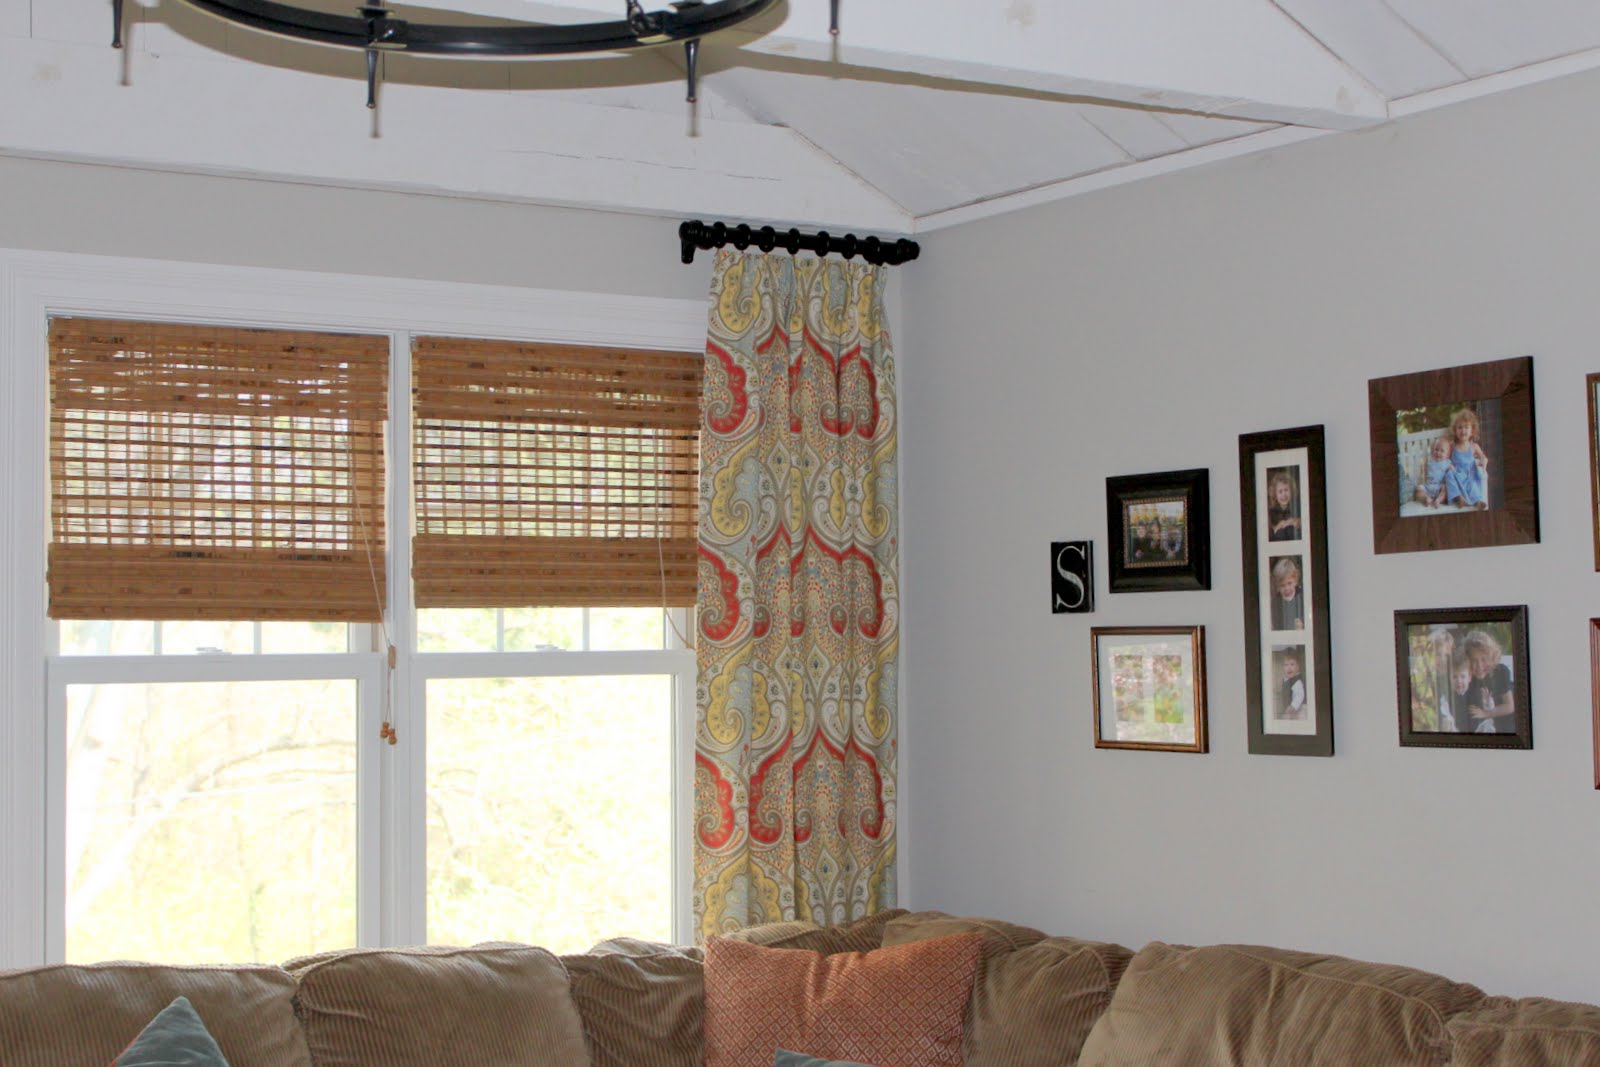 You Can't Go Wrong With a Bamboo Shade - Lorri Dyner Design